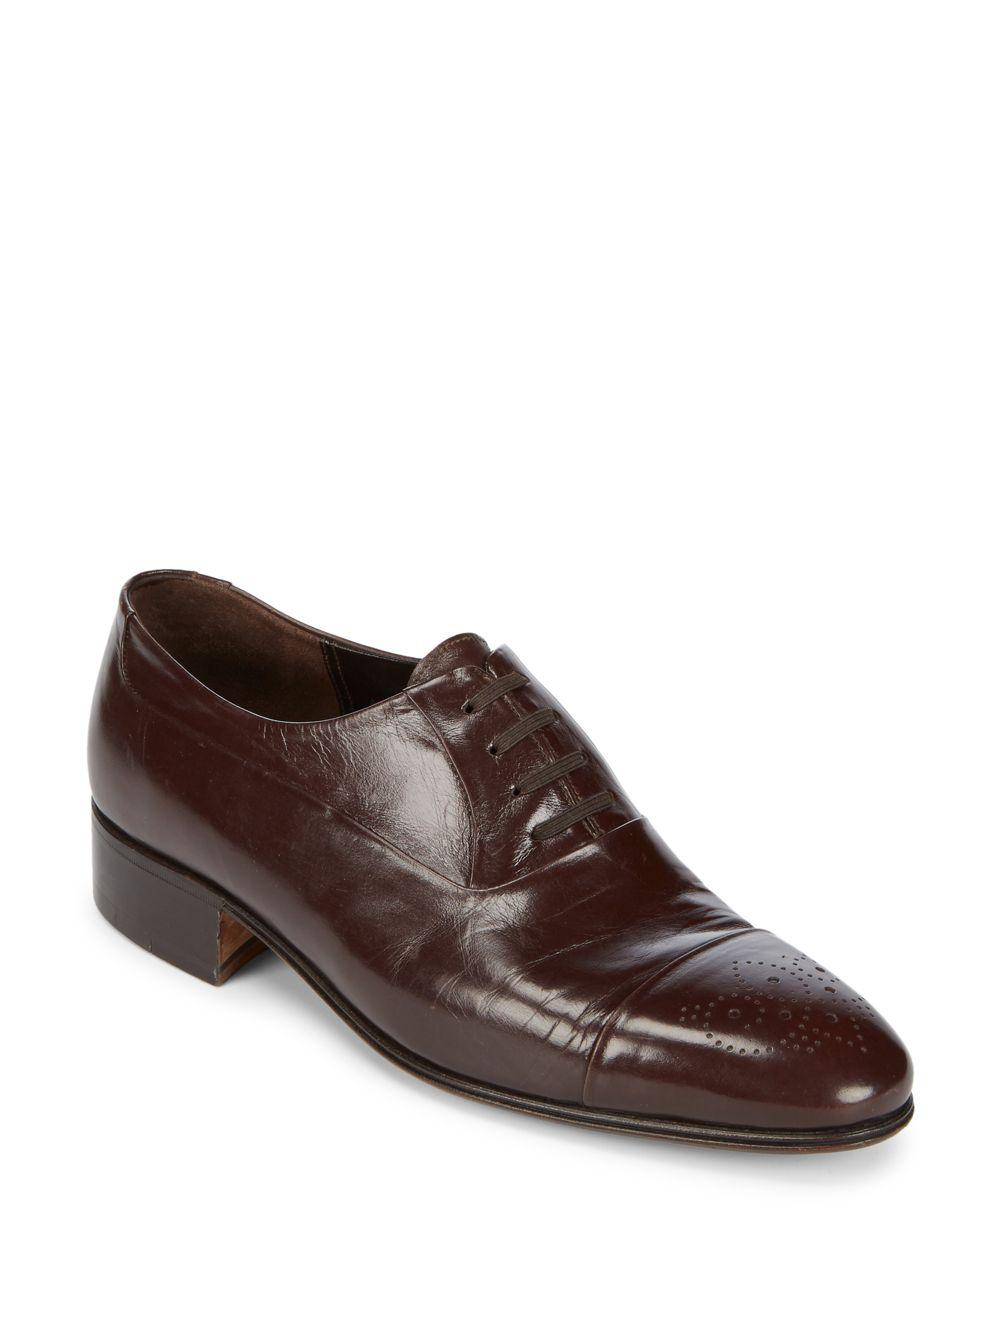 Artioli Leather Cap Toe Dress Shoes In Brown For Men Lyst